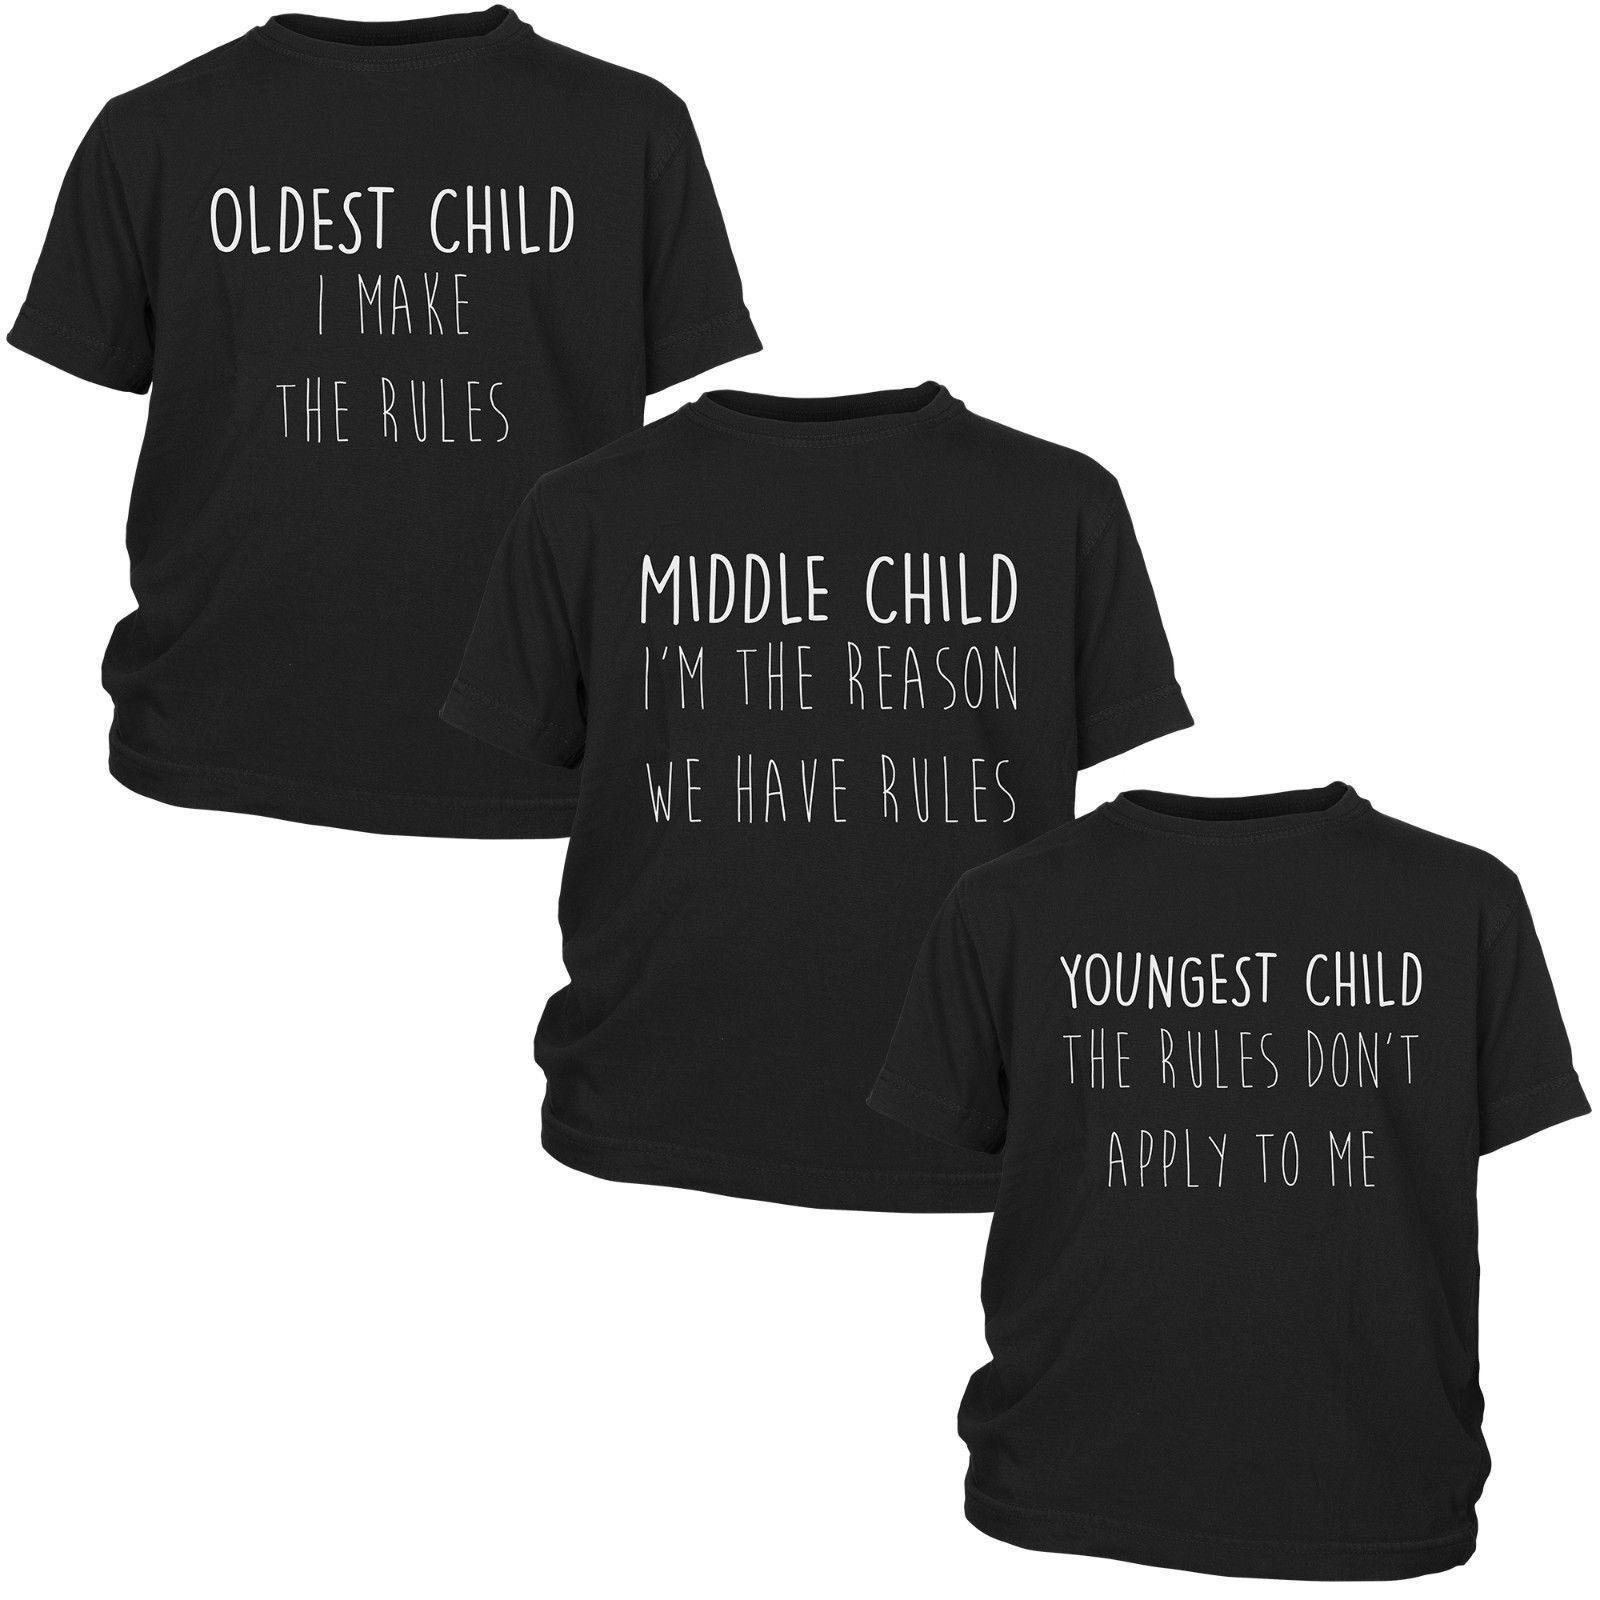 47751ca18 New Kids Family Rules T Shirts 3 Pack Youngest Middle Oldest Child  Childrens Top